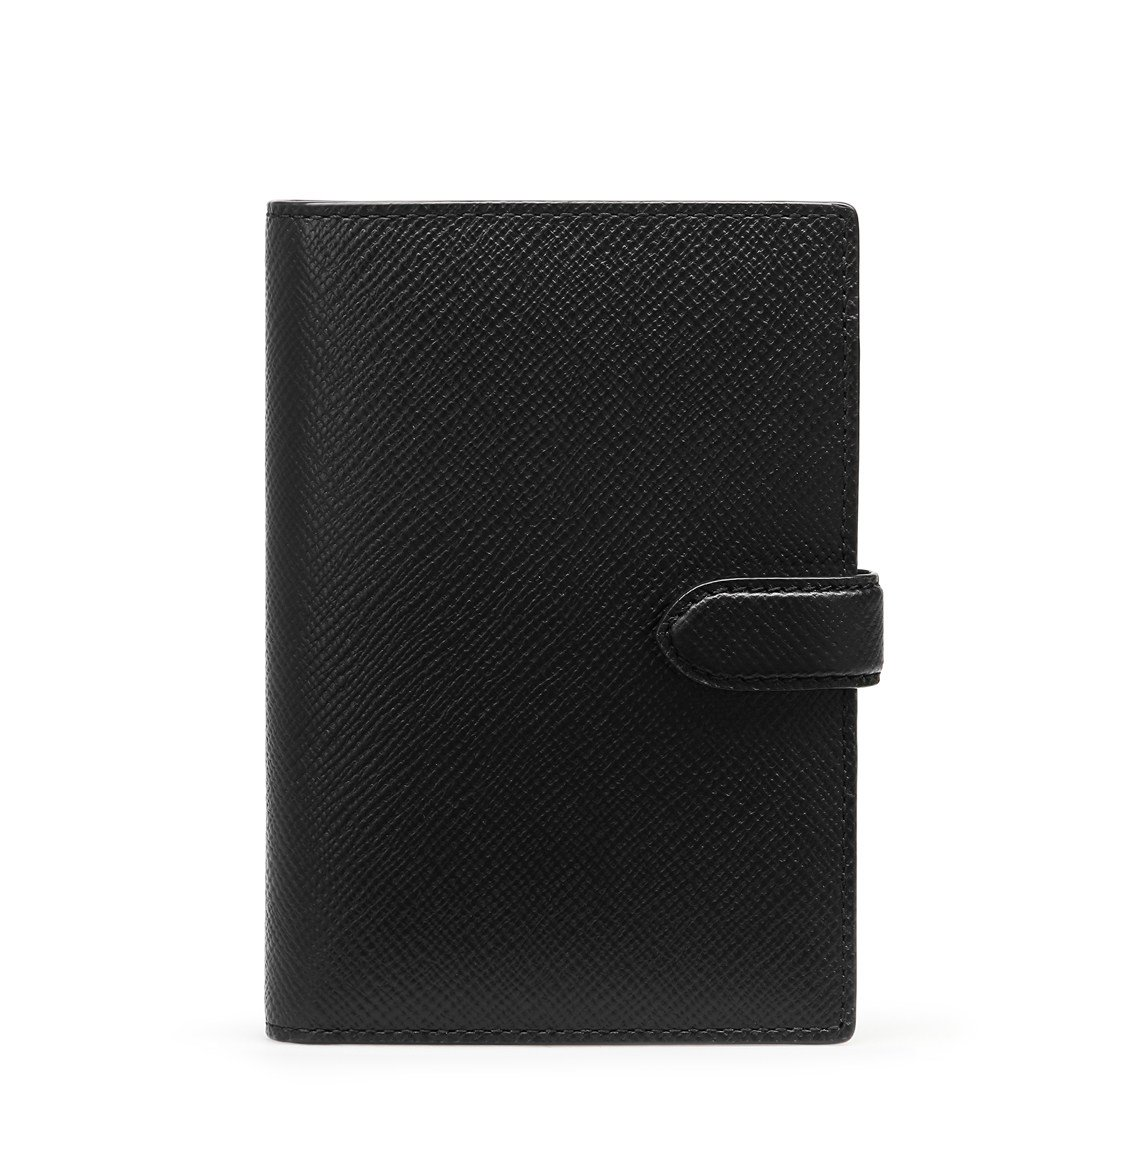 Smythson Panama Cross-Grain Leather Passport Cover Wallet